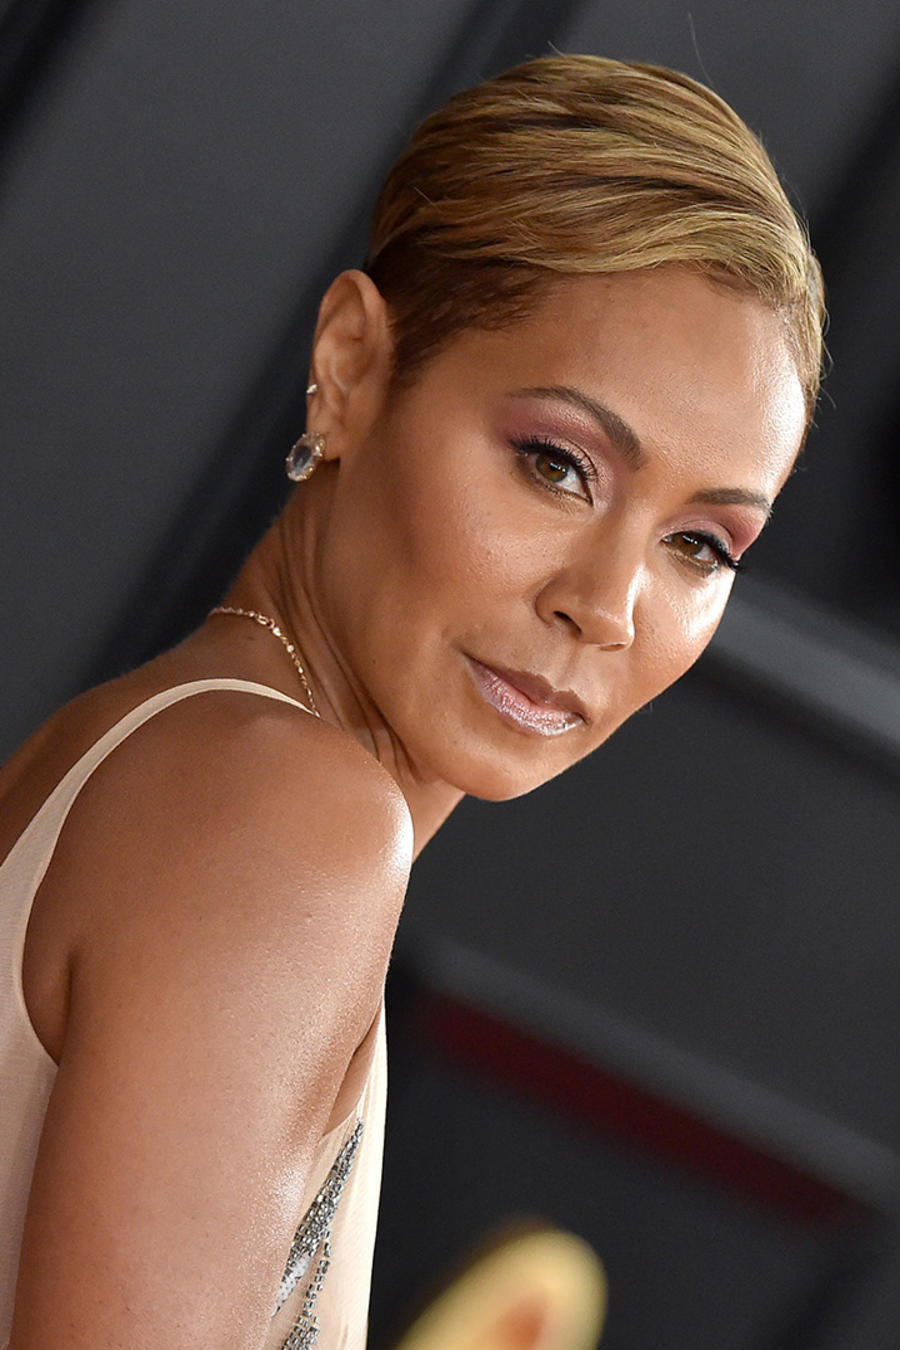 Jada Pinkett Smith en los Grammy Awards